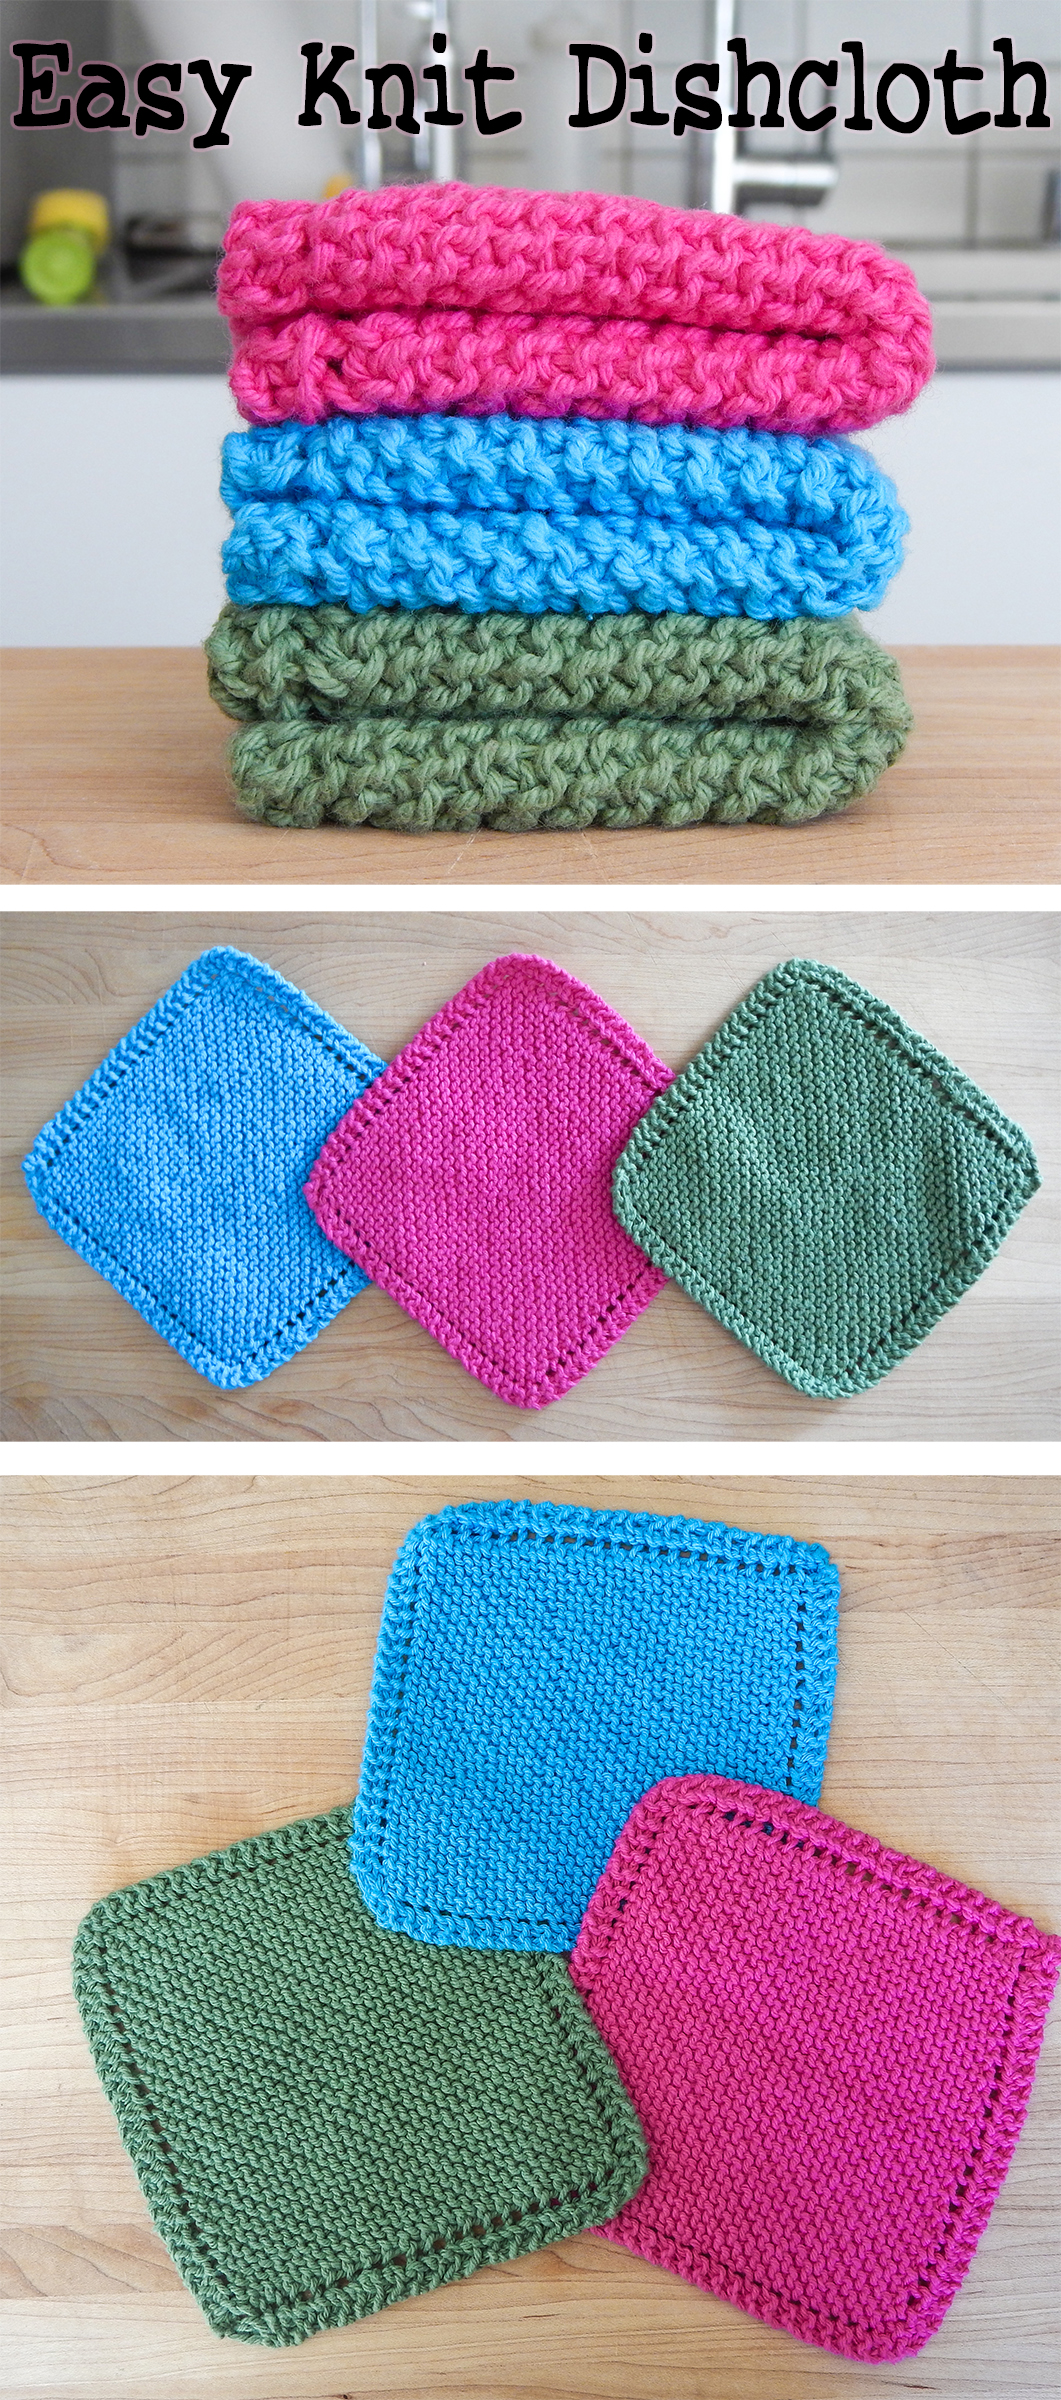 Easy Knit Dishcloth / Washcloth: 3 Steps (with Pictures)